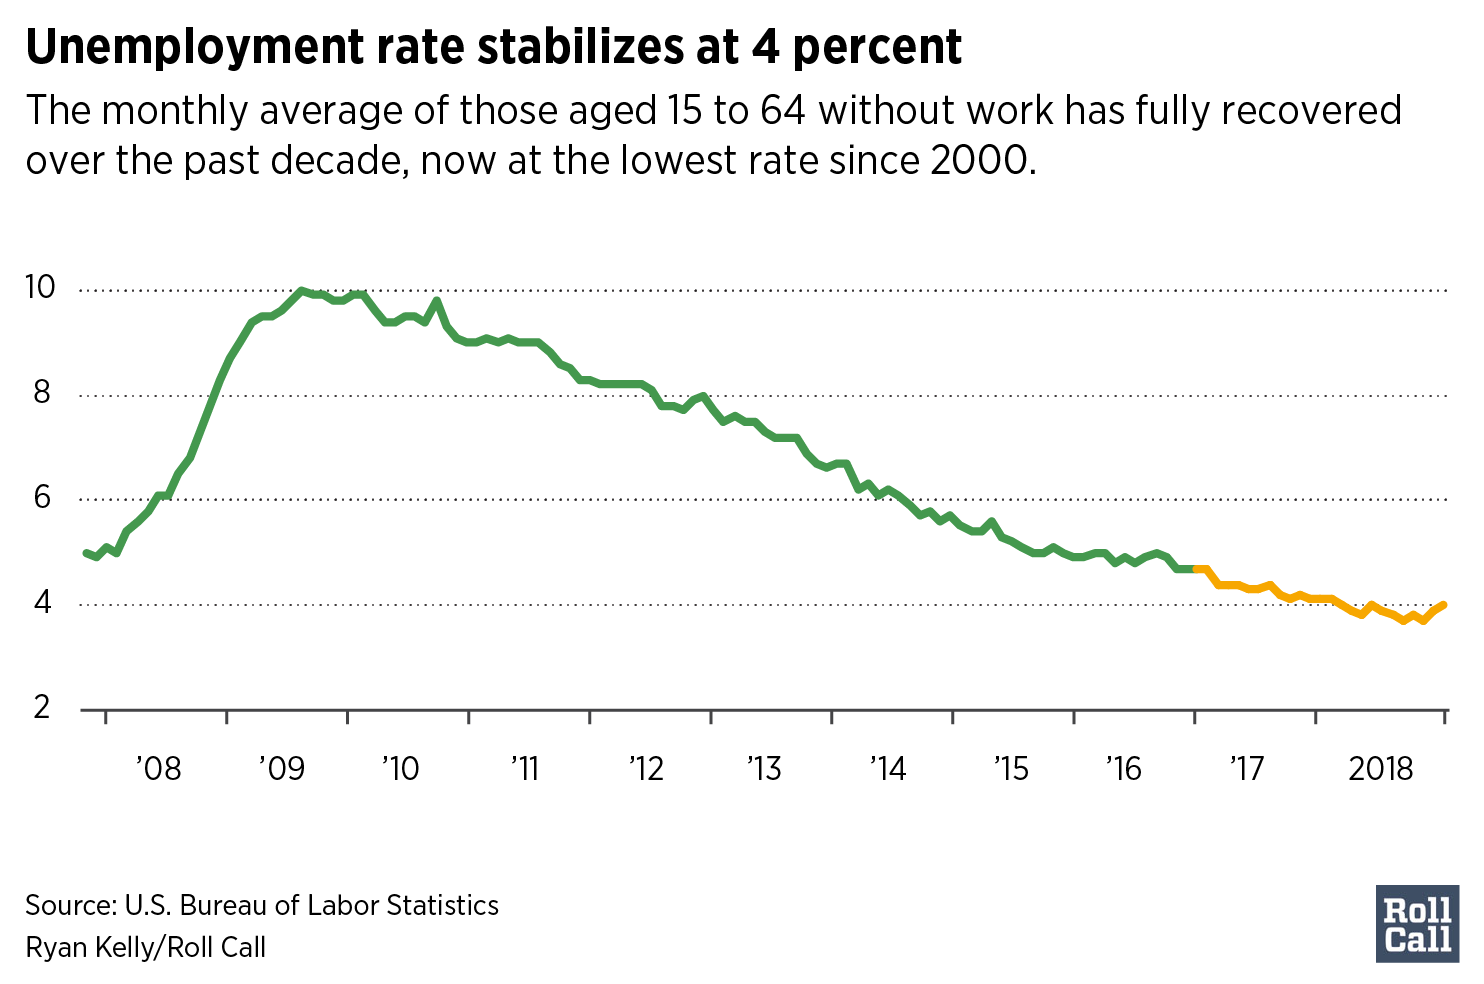 Unemployment rate stabilizes at 4 percent